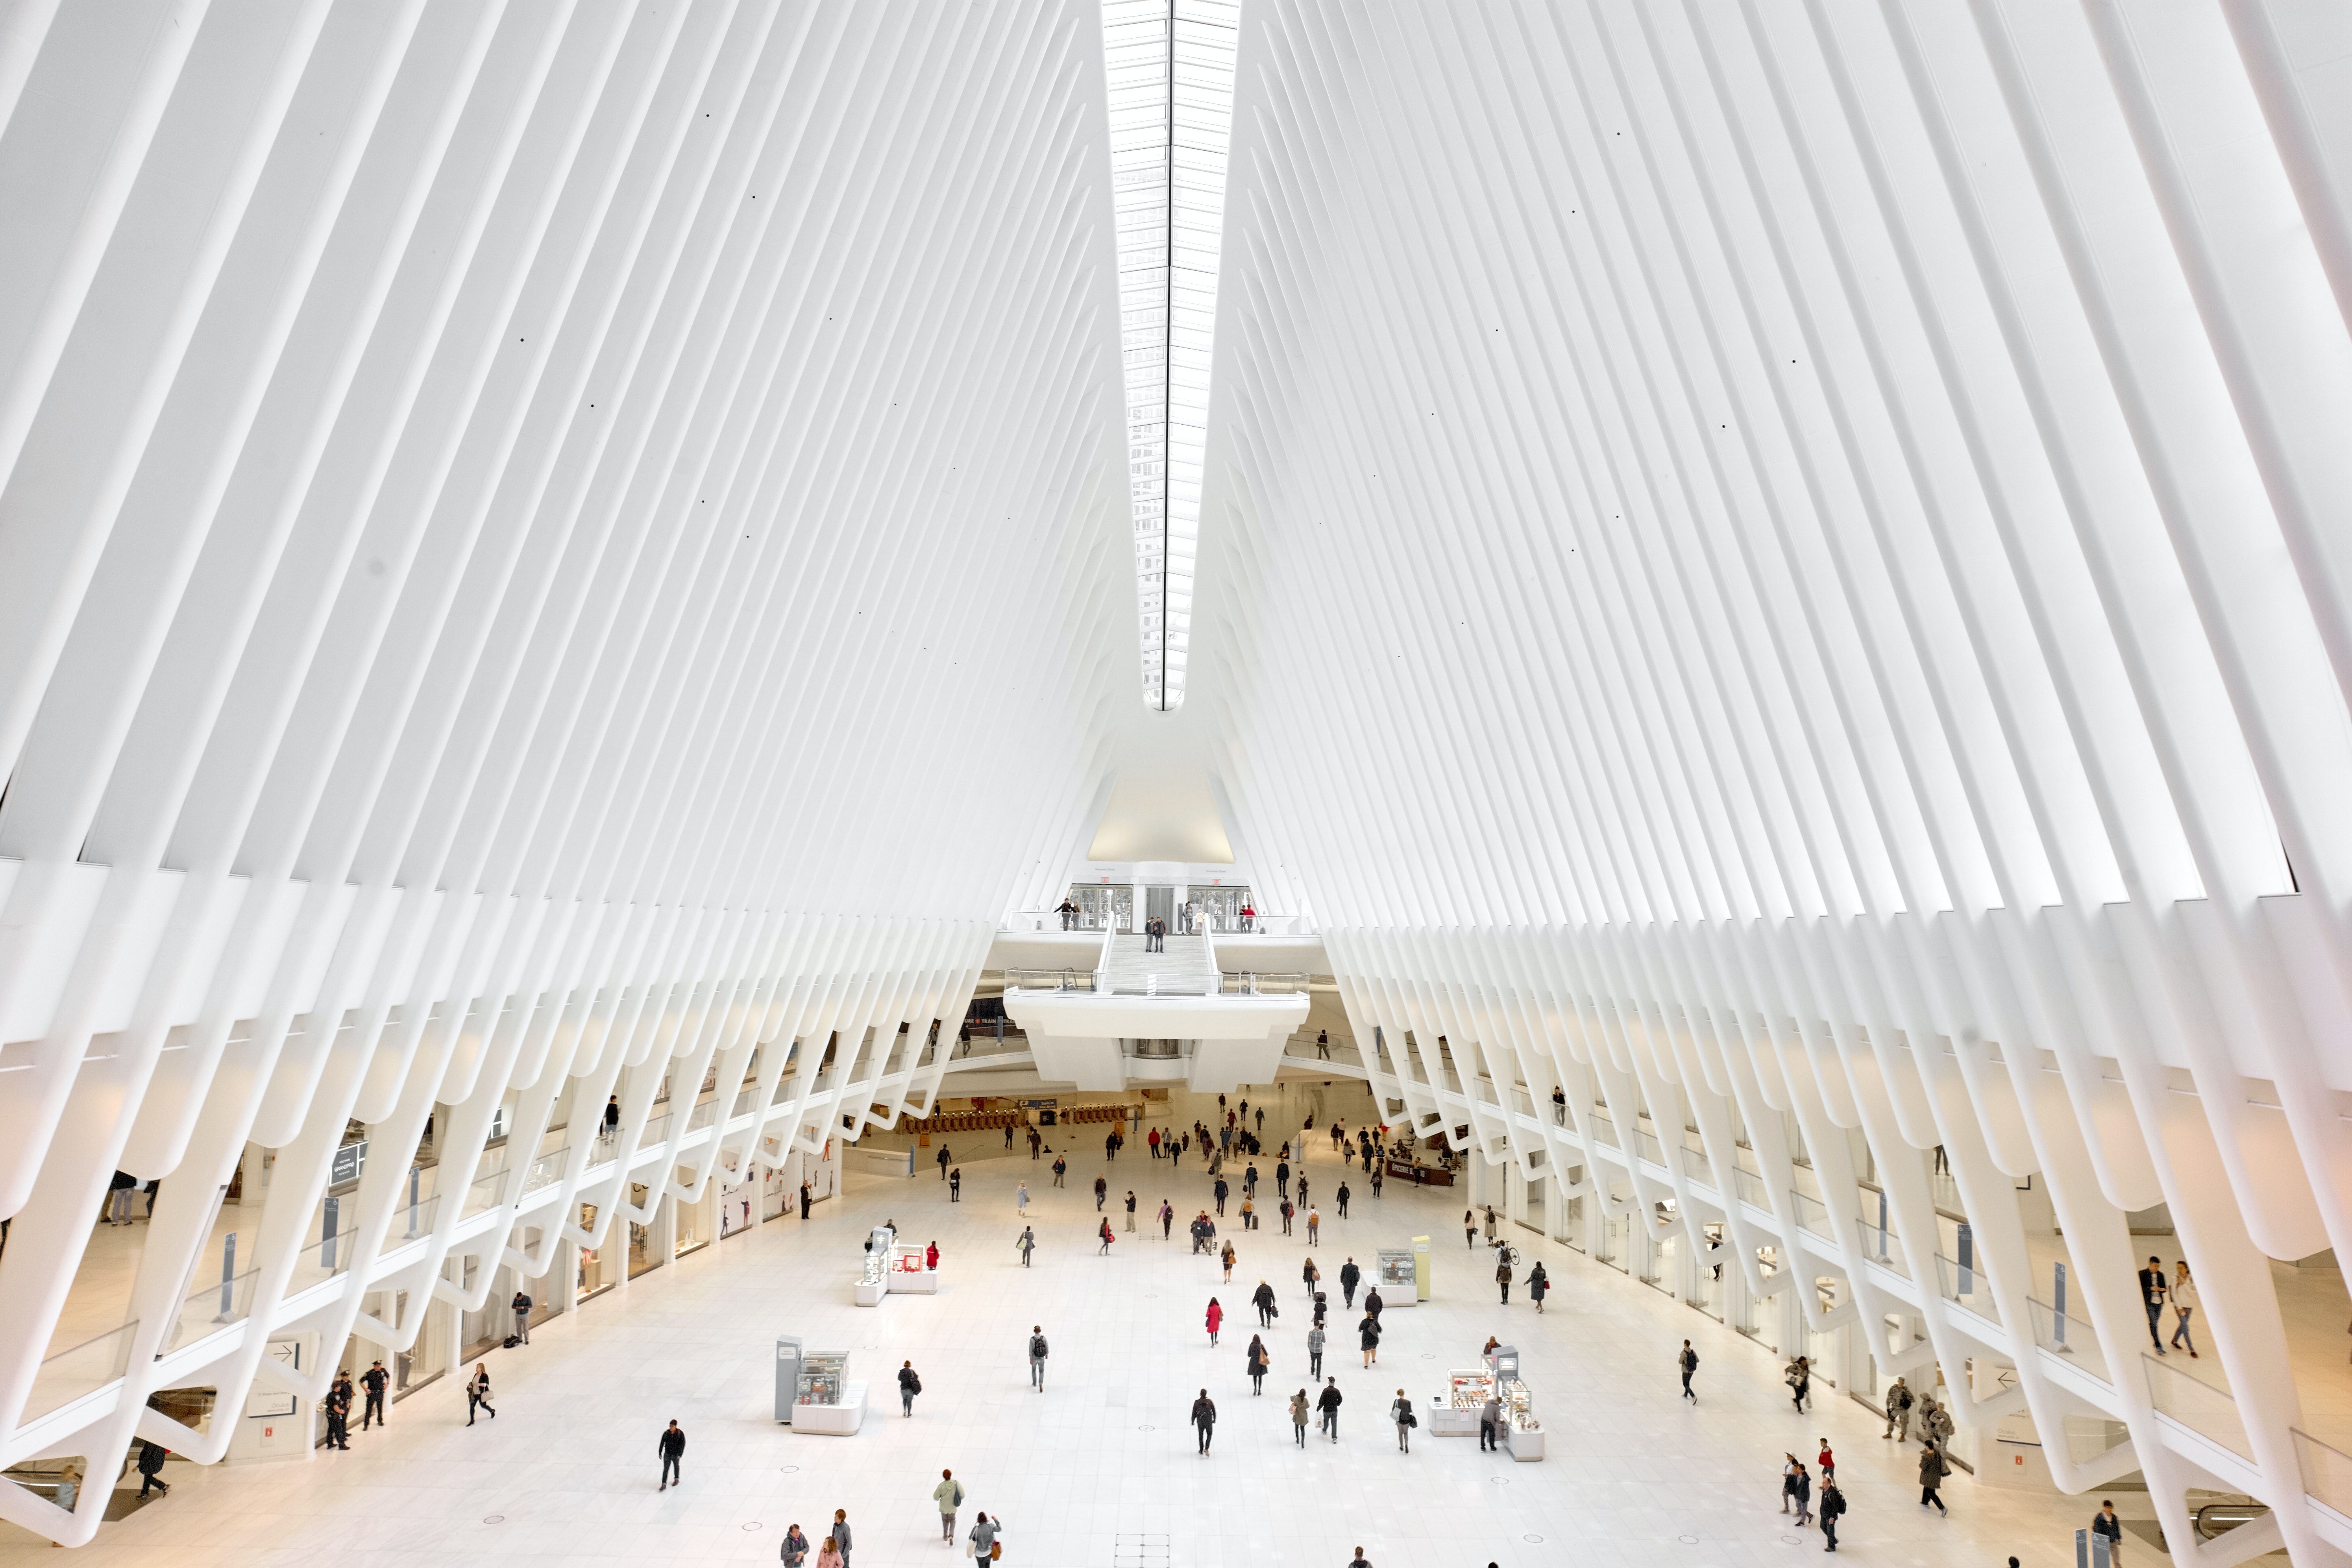 Commuters in the modern white interior of the World Trade Center terminal station